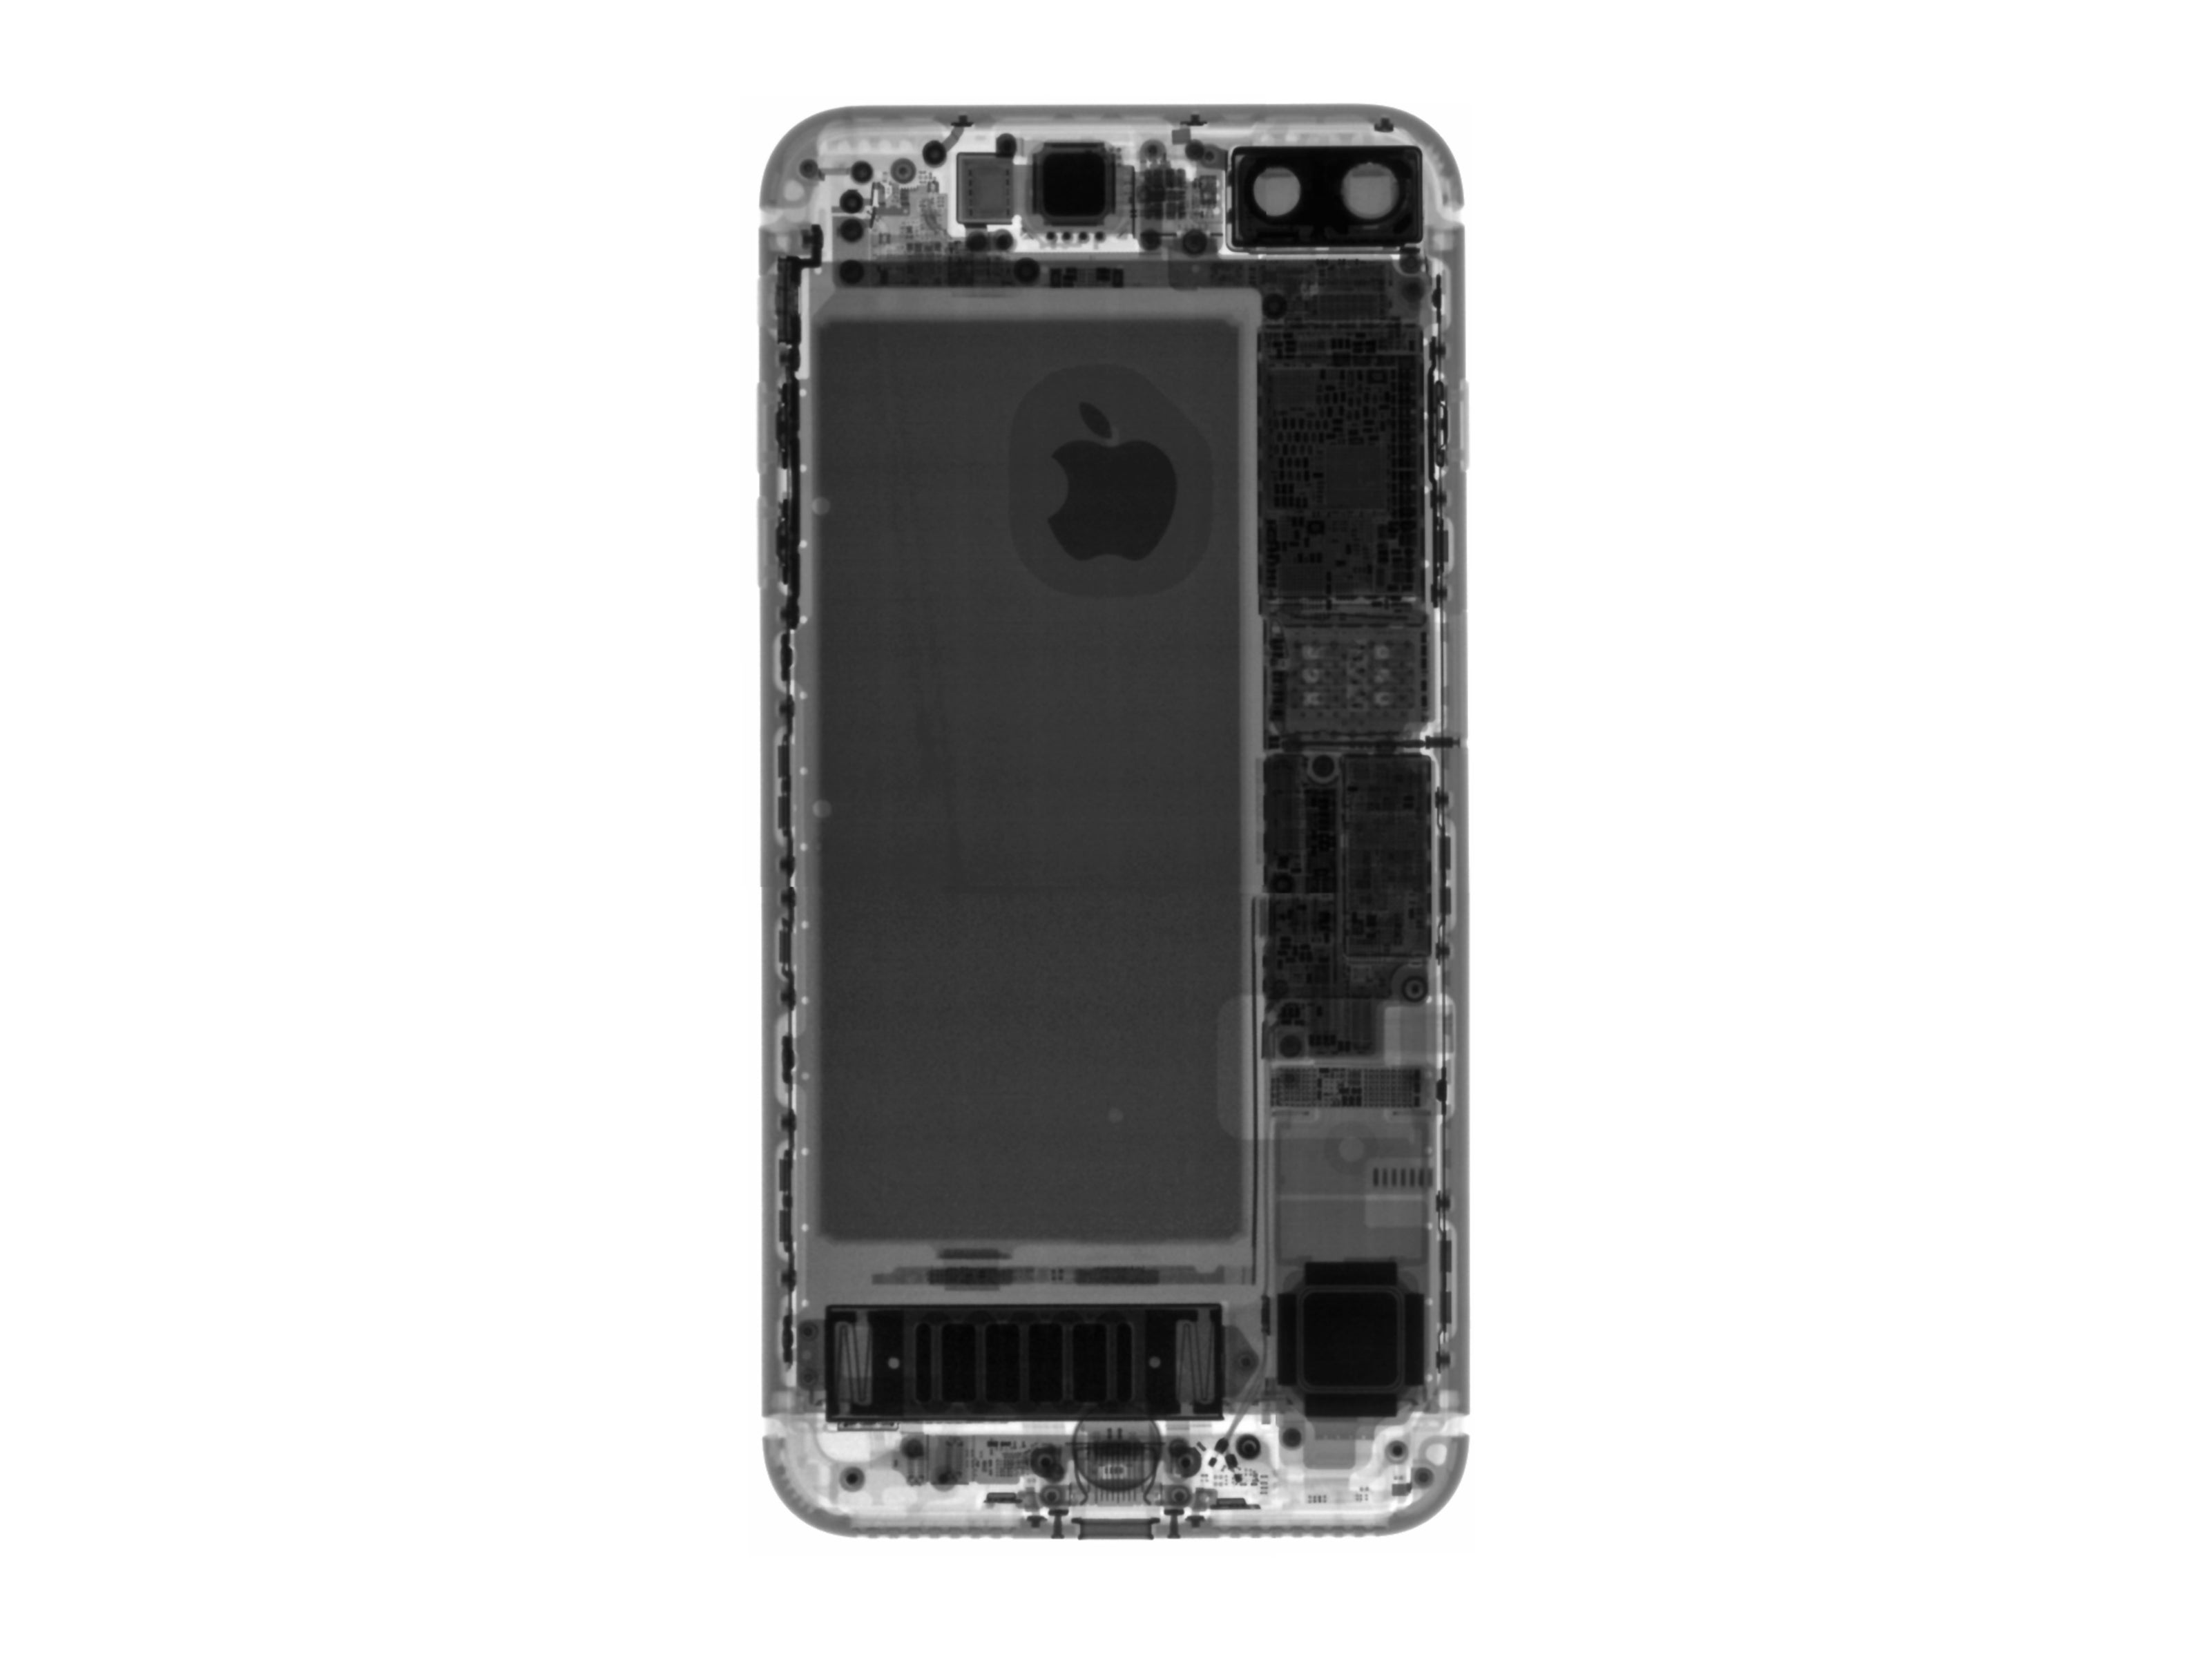 Ifixit Iphone X Internal Wallpaper Iphone 7 Plus Teardown Reveals What Apple Did With The